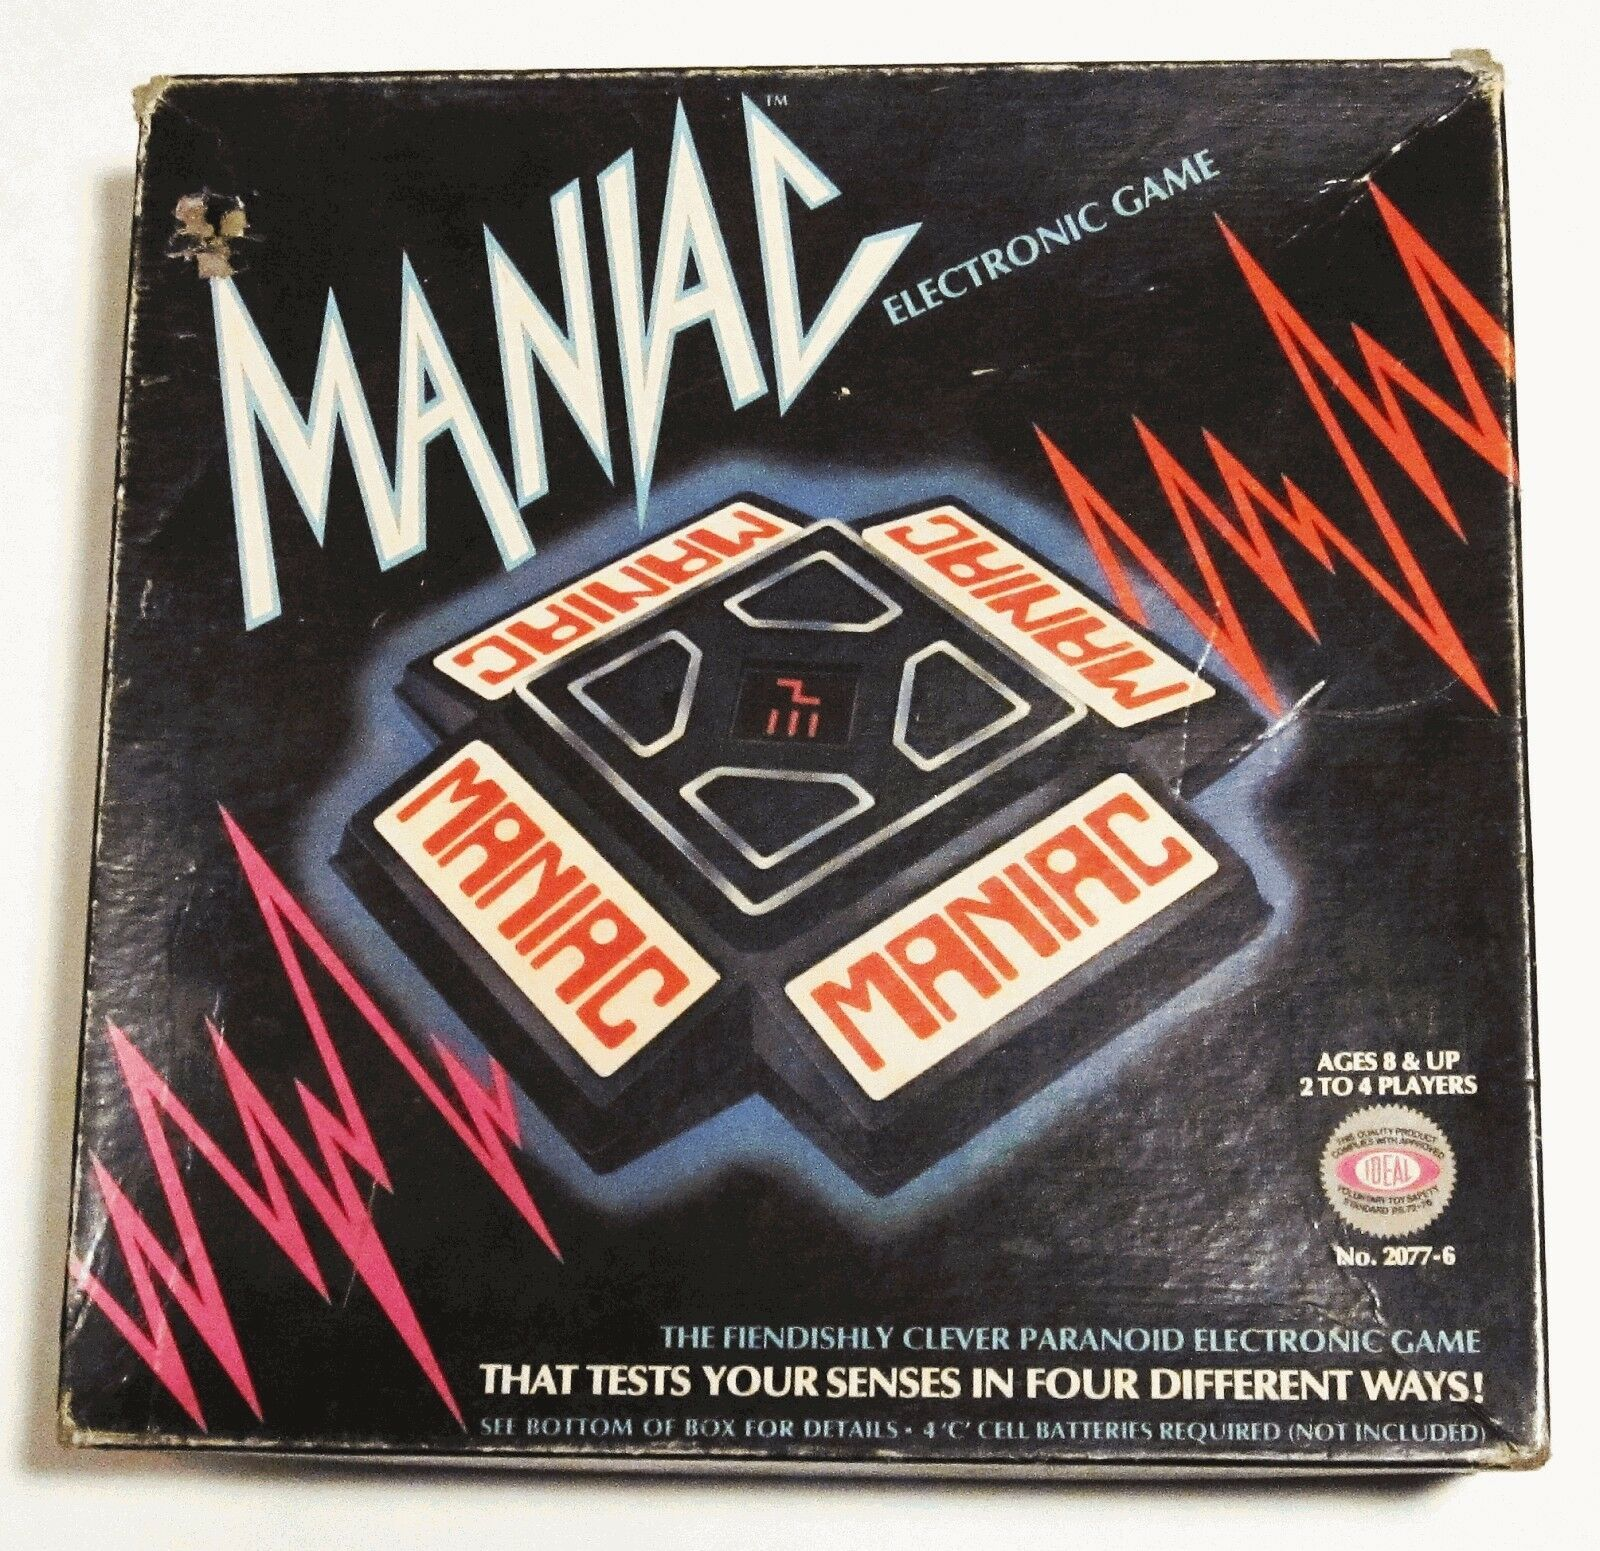 MANIAC Electronic Game 1979 Ideal Complete in Box Vintage Original Kind of Works - £5.72 GBP